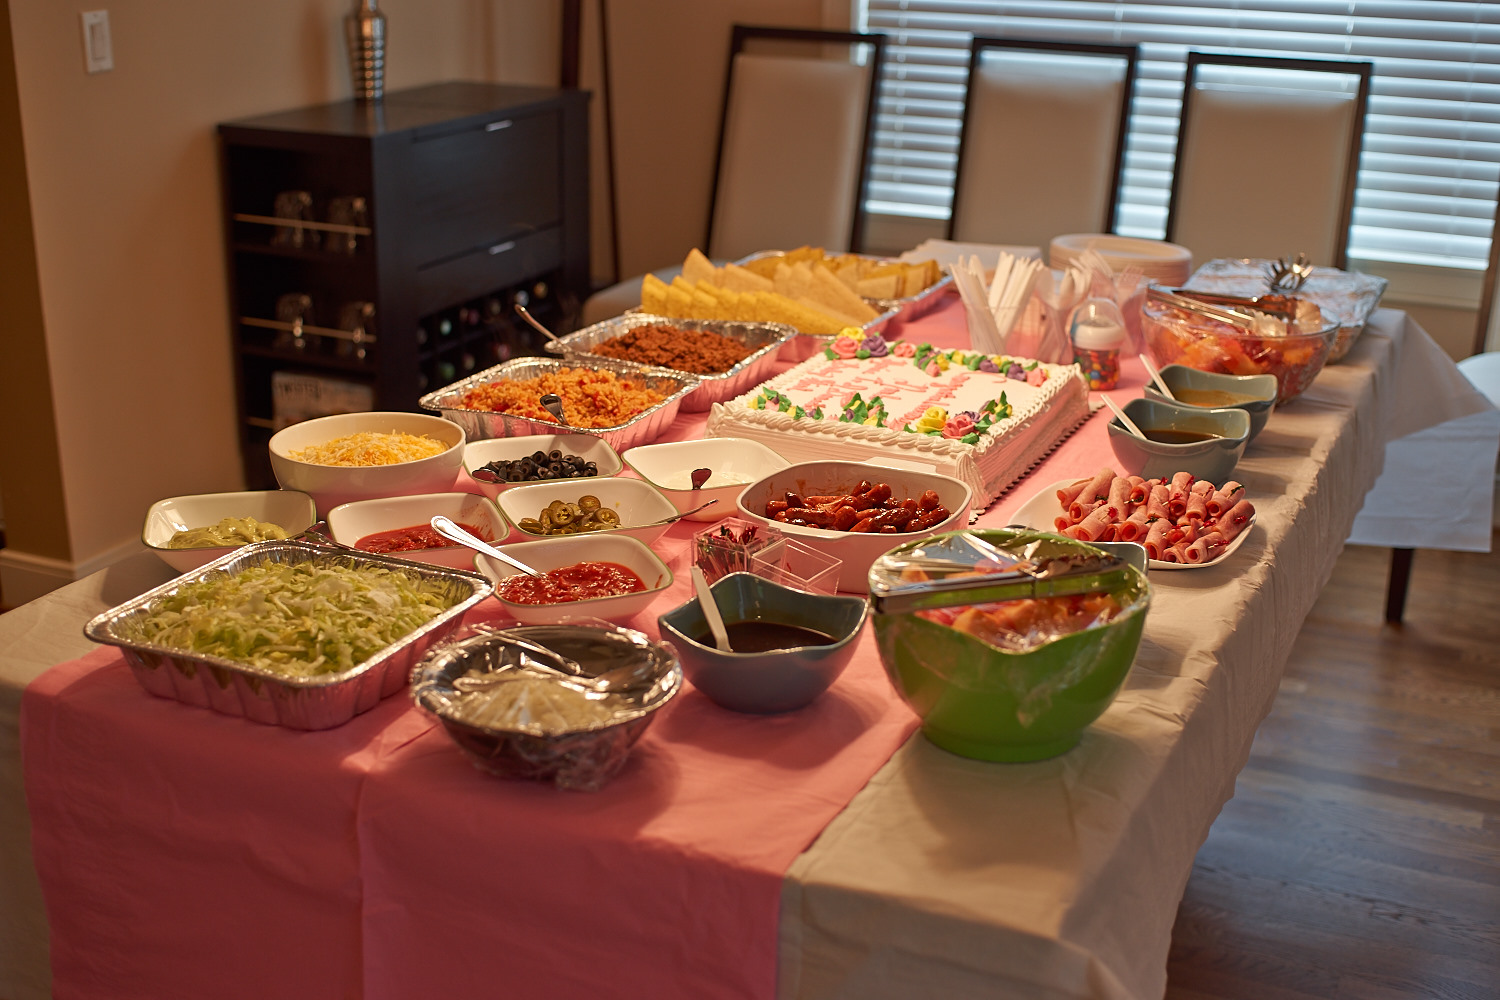 Shush! Everyone who knew me knows what I came for.. the food :) let the celebration begin!